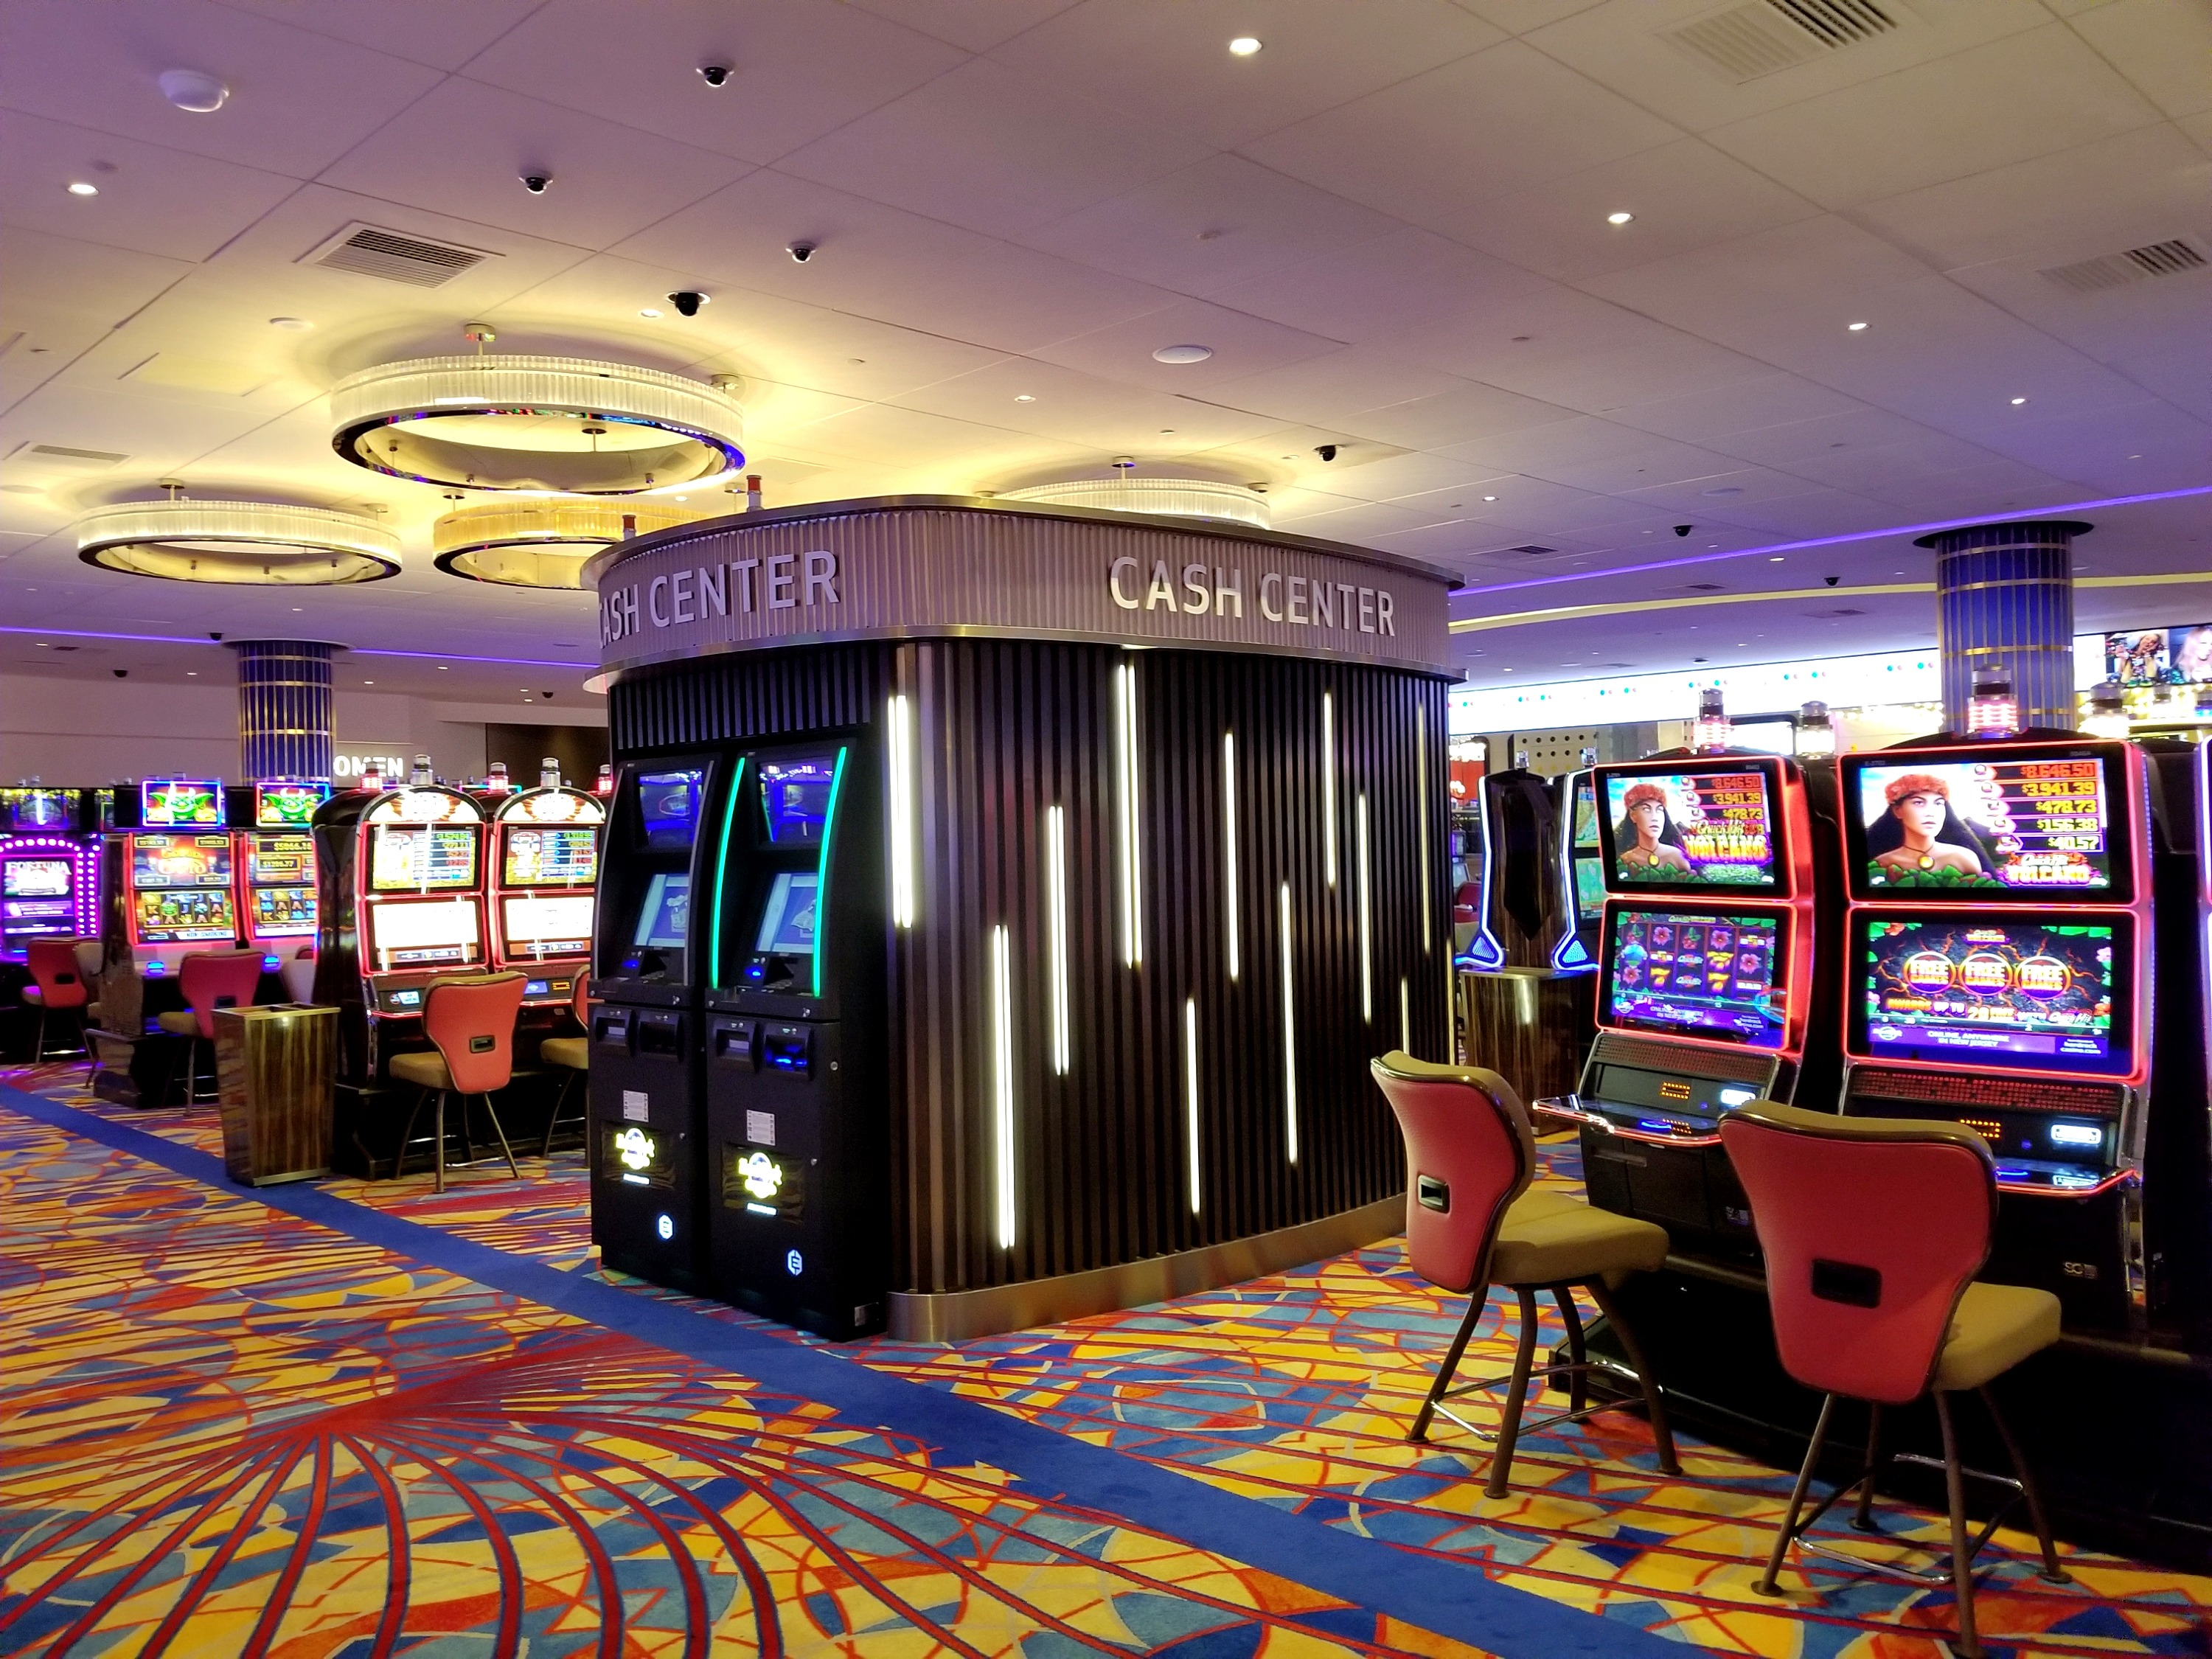 Designed and manufactured Cash Center Kiosk - Hard Rock Atlantic City